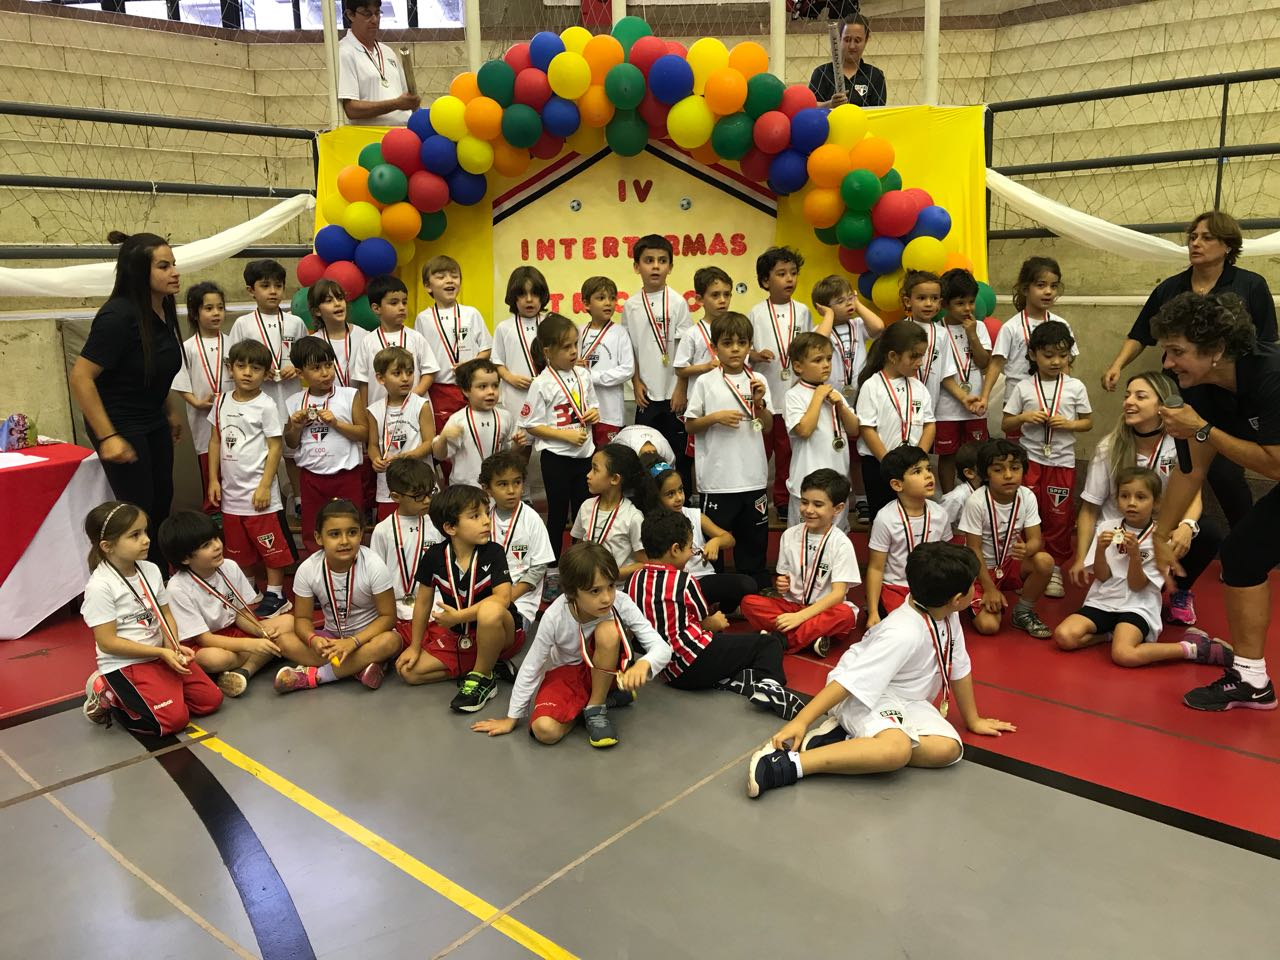 IV Interturmas Tricolor 5 anos